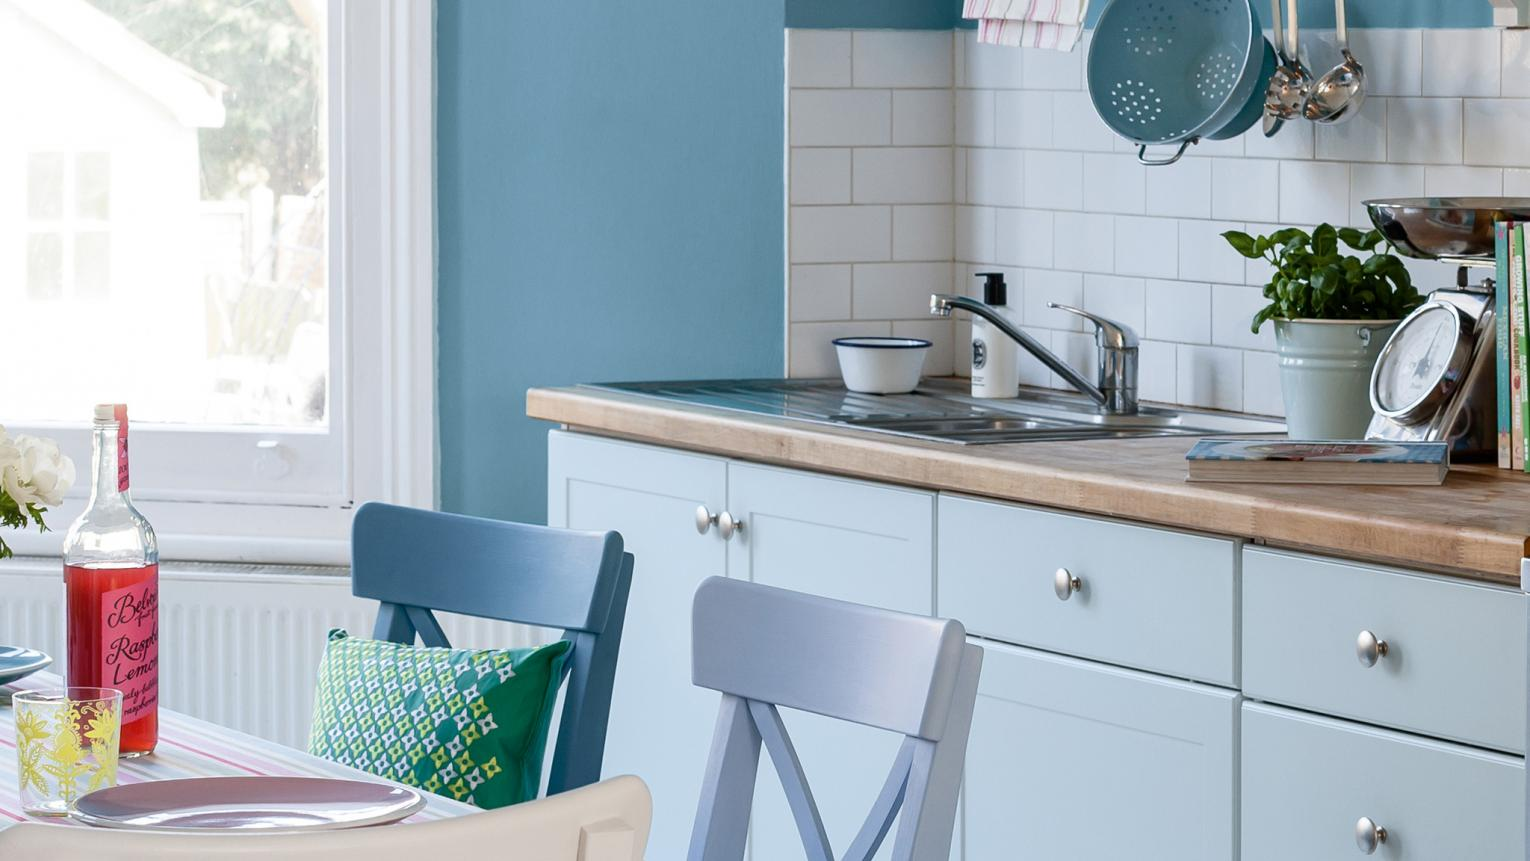 Touches of blue define the space in this open plan kitchen.